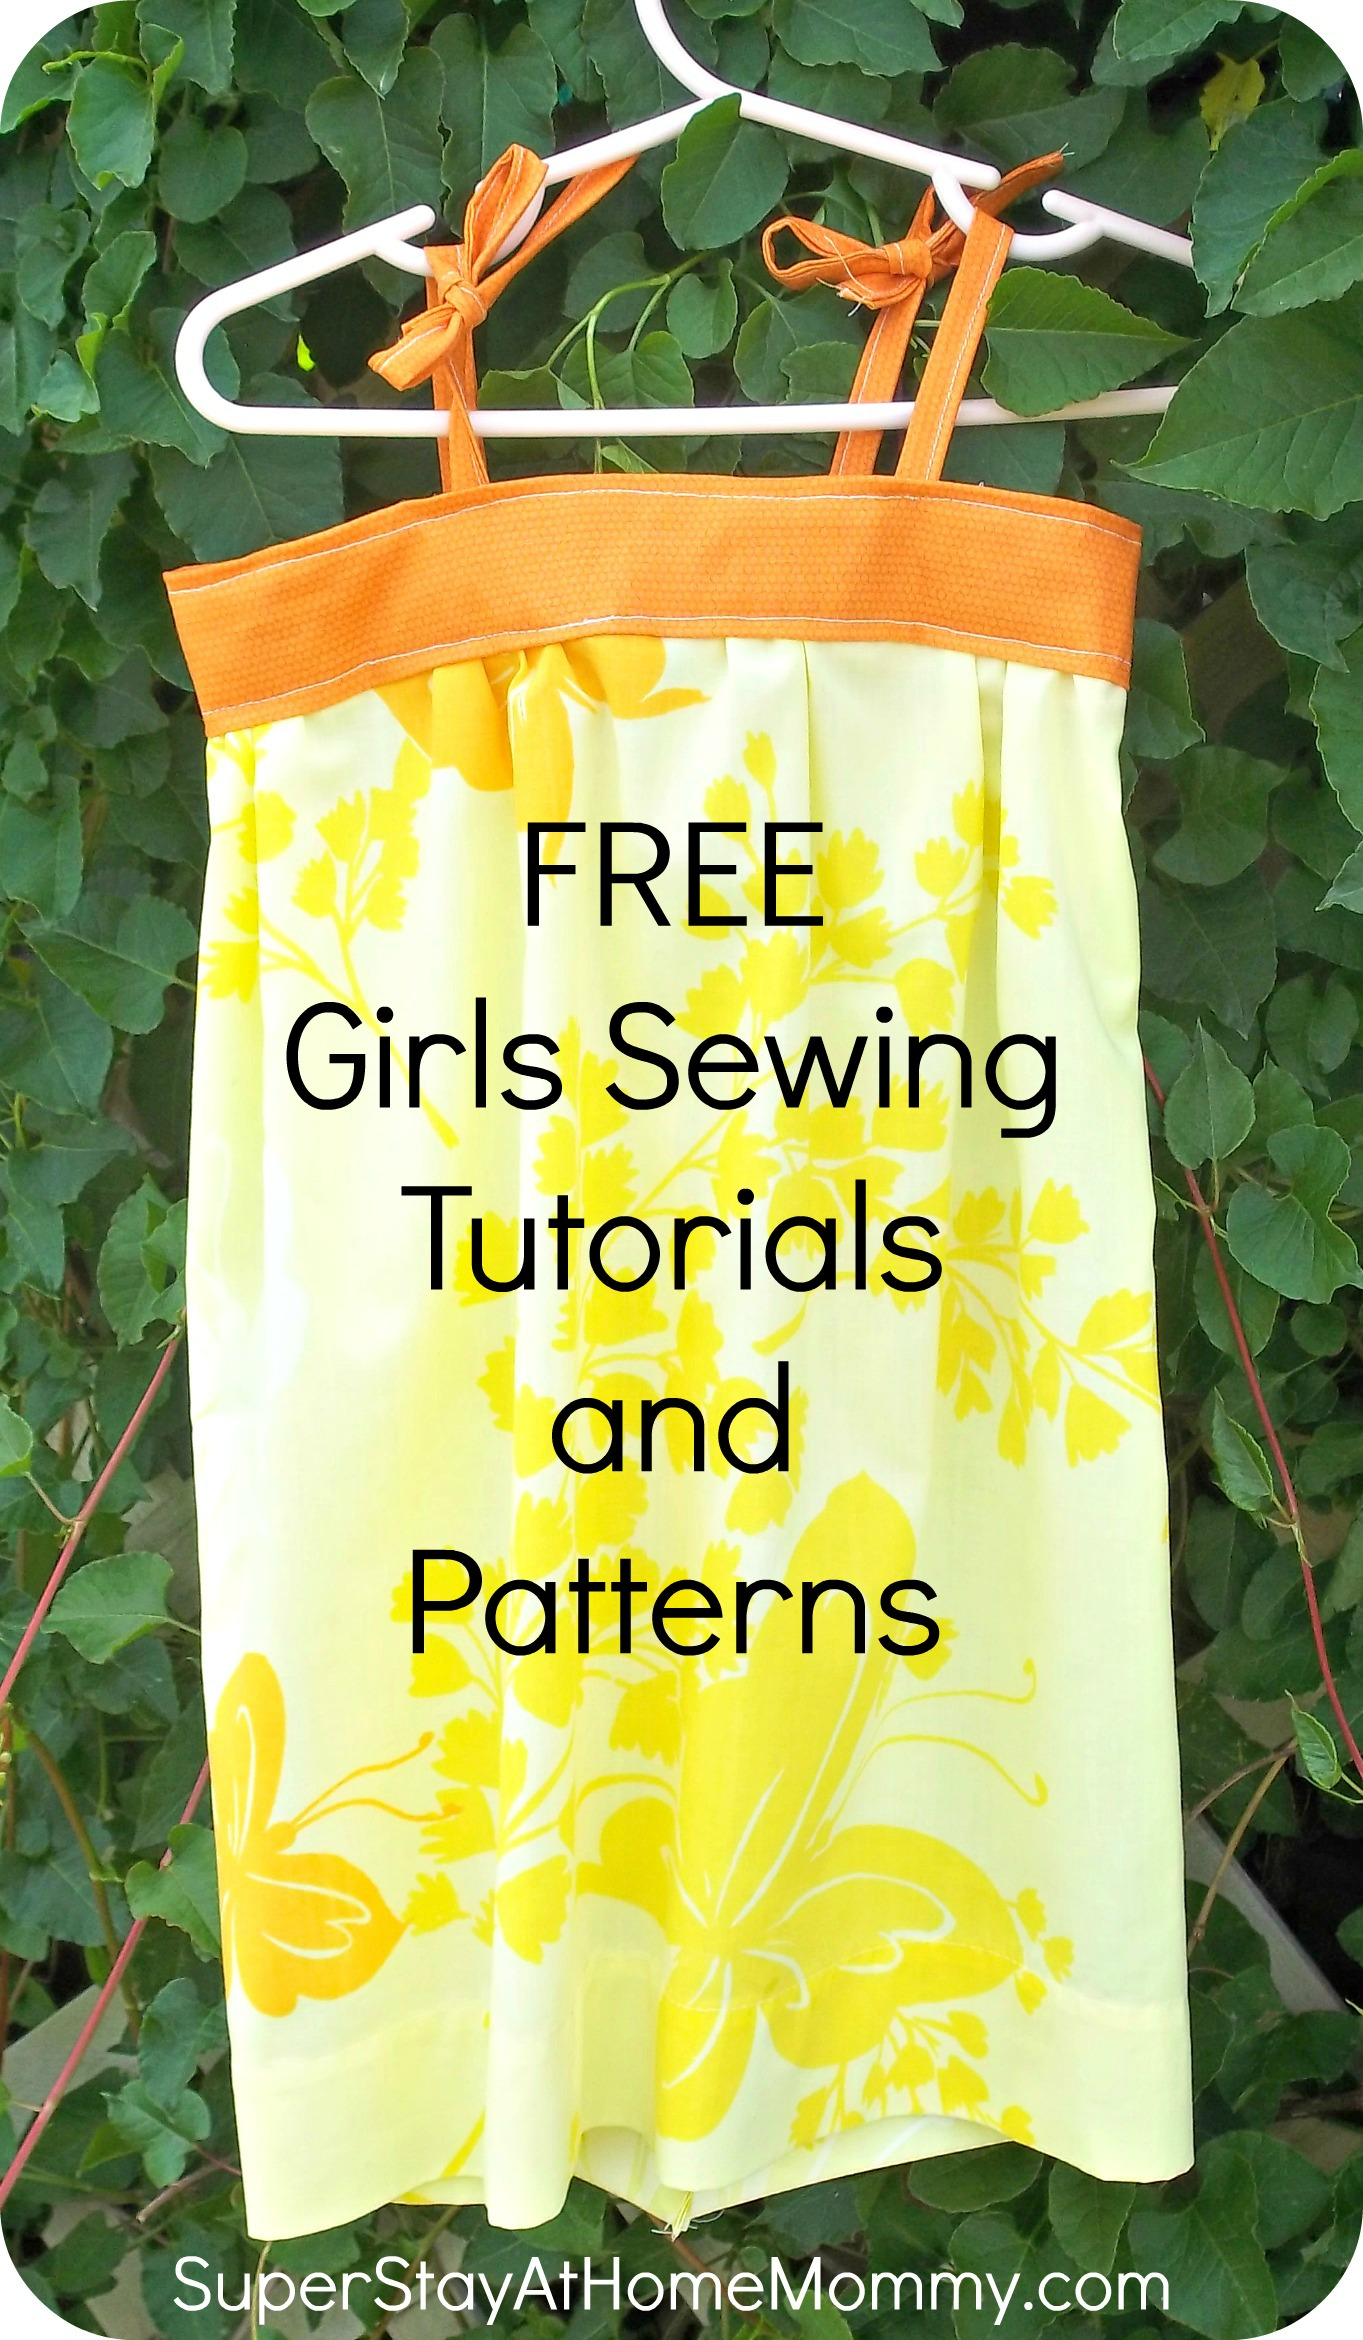 FREE Girls Sewing Tutorials and Patterns! | Super Stay At Home Mommy!